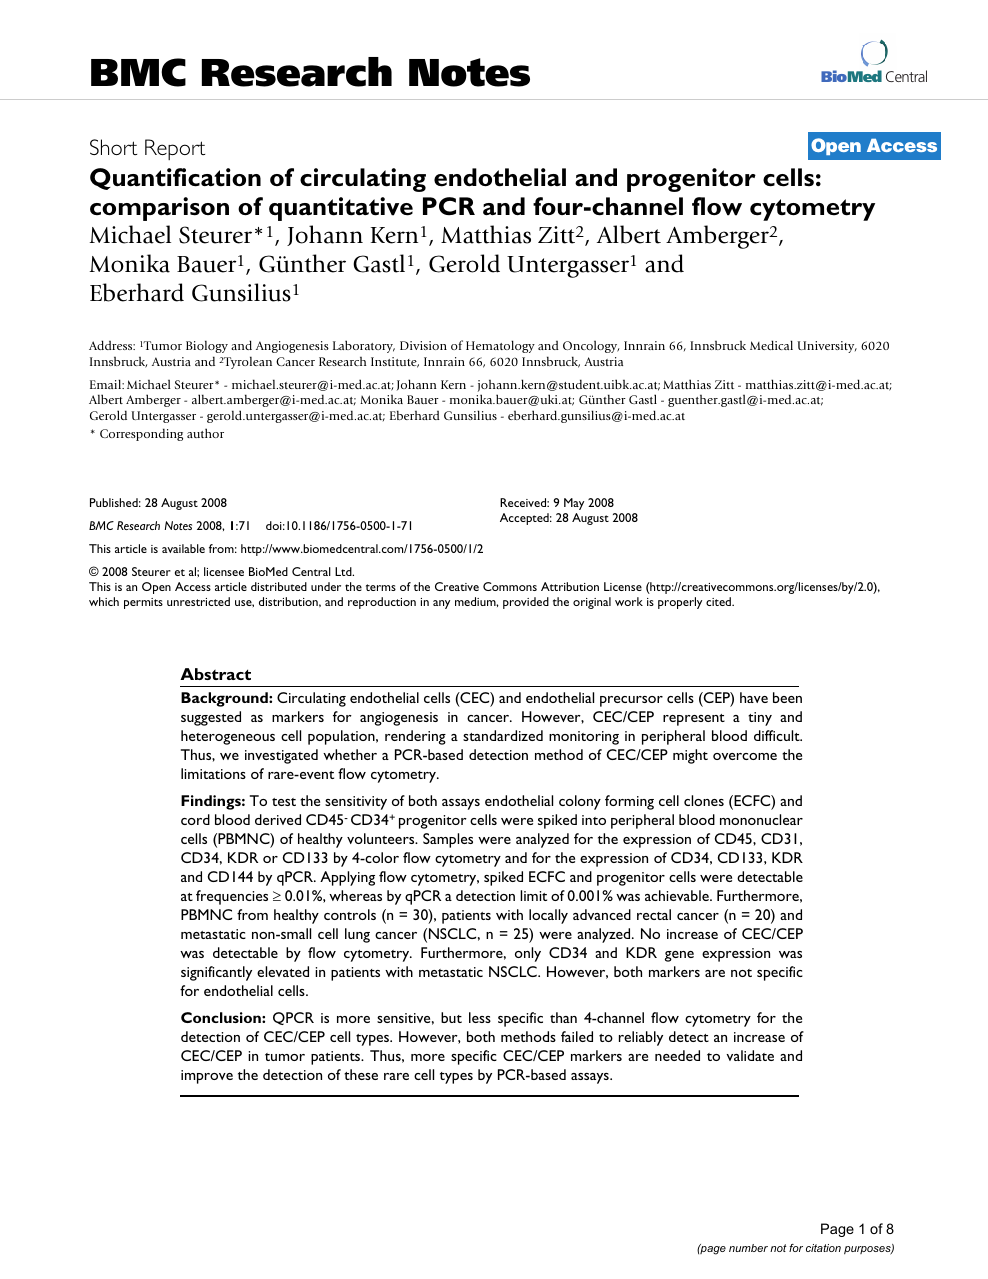 Quantification of circulating endothelial and progenitor